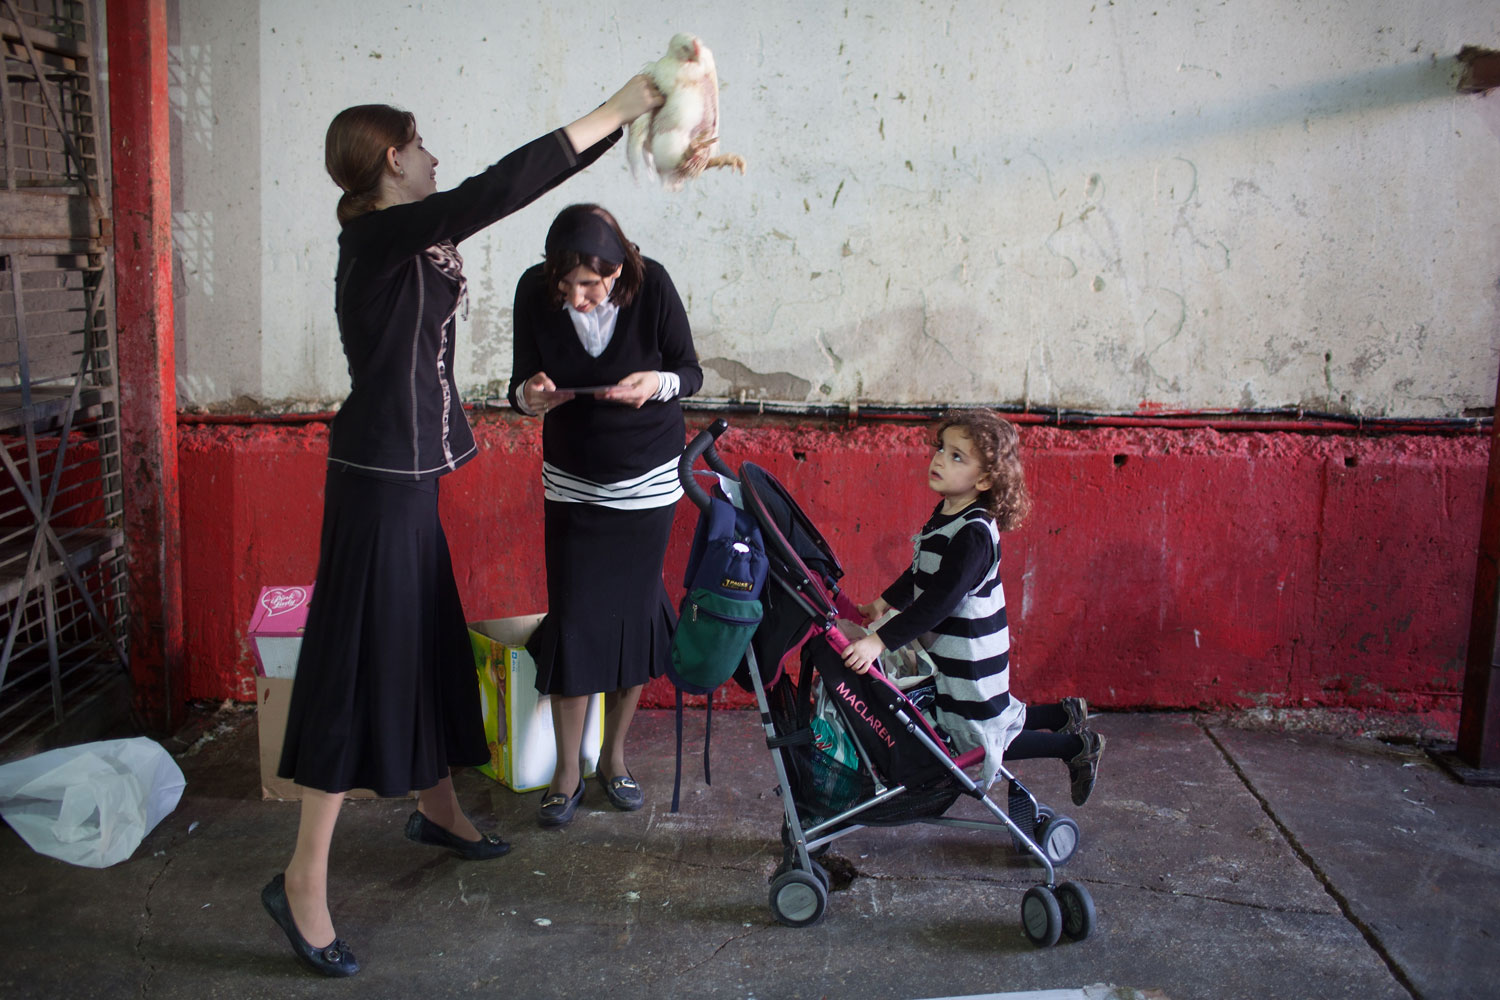 Sep. 20, 2012. An ultra-Orthodox Jewish woman swings a chicken over her family during a Kaparot ceremony in Bnei Brak, Israel. The Jewish ritual is supposed to transfer the sins of the past year to the chicken, and is performed before the Day of Atonement, or Yom Kippur, the most important day in the Jewish calendar, which this year will start on sunset on Sept. 25.